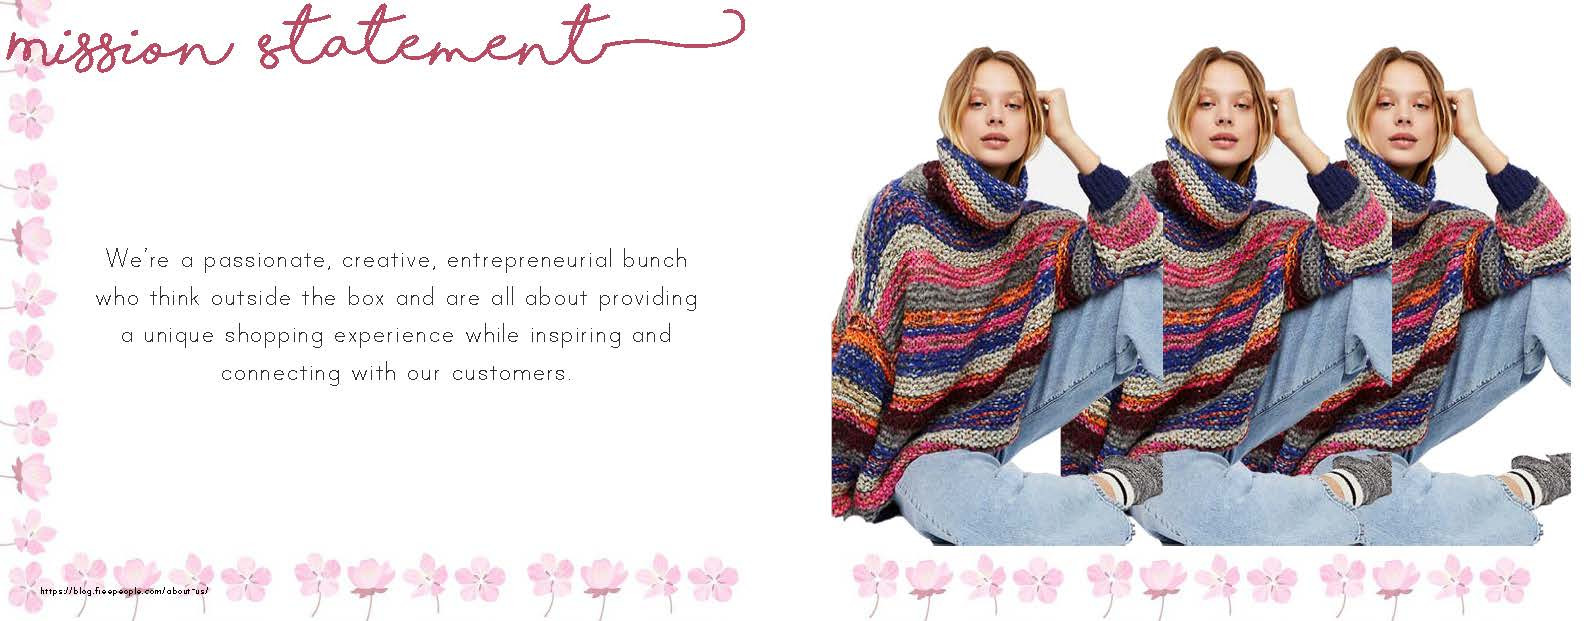 FREE PEOPLE BUYING PROJECT_Page_11.jpg